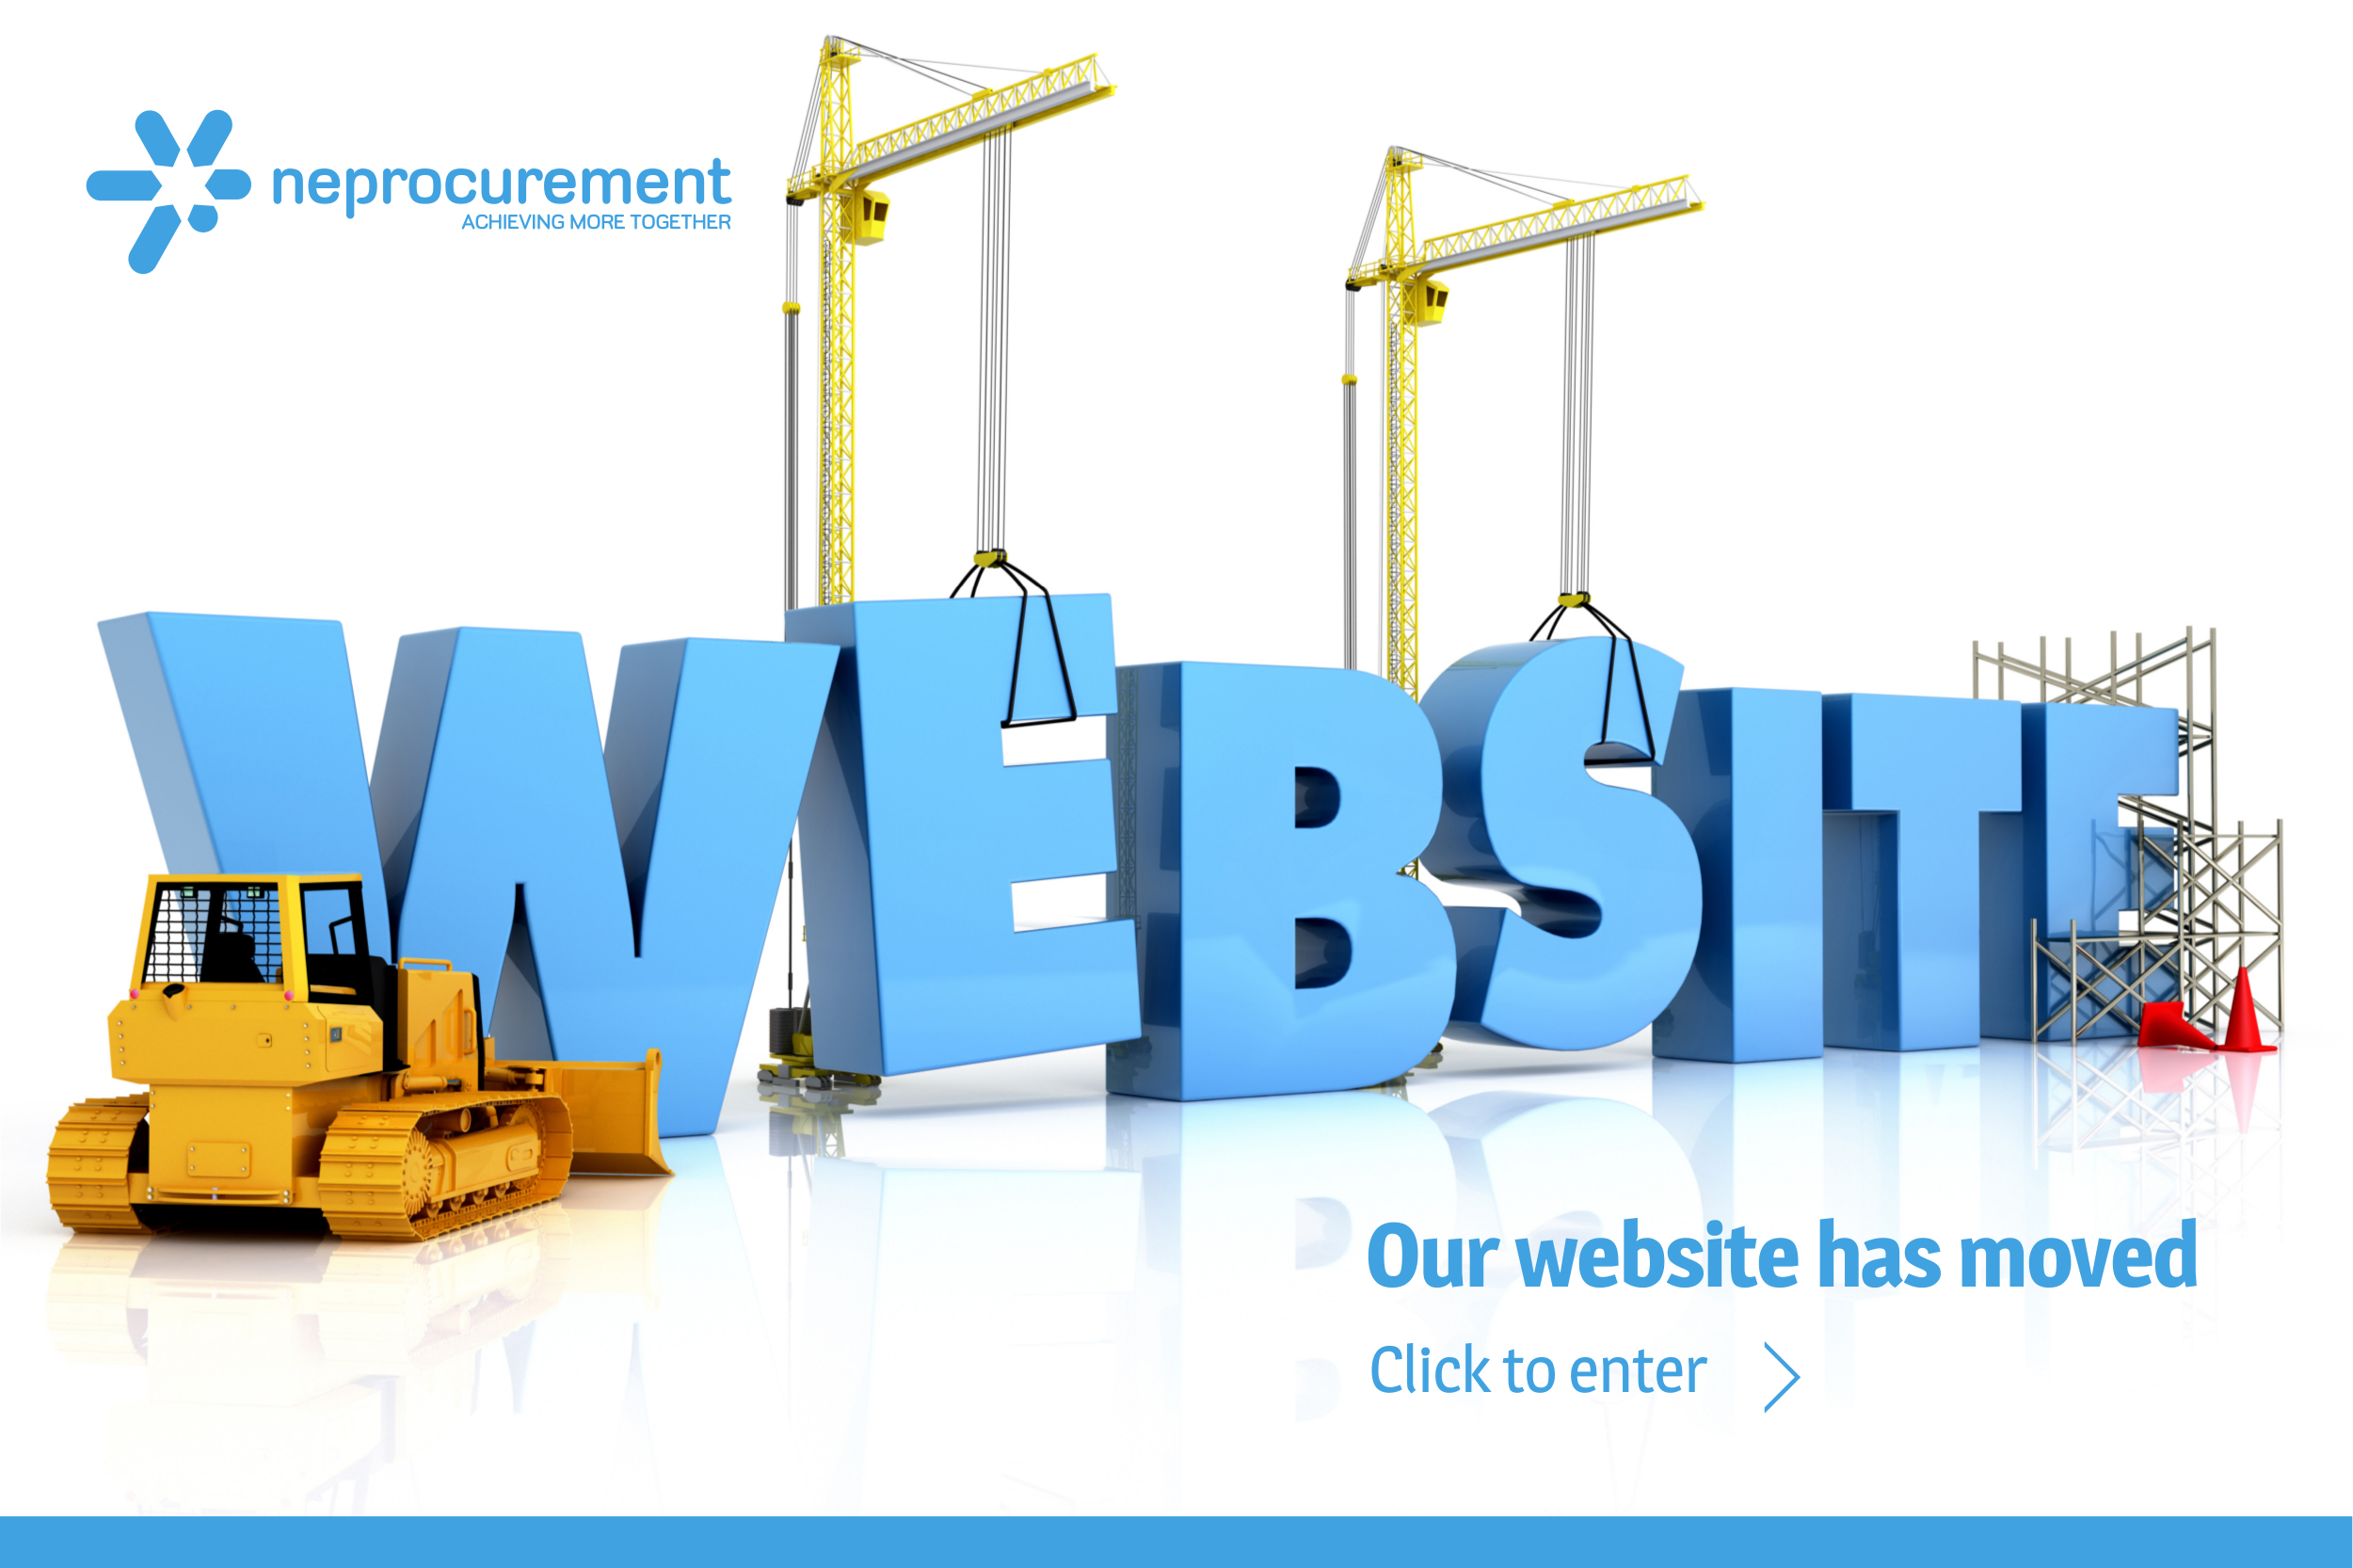 Our website has moved: click to enter.